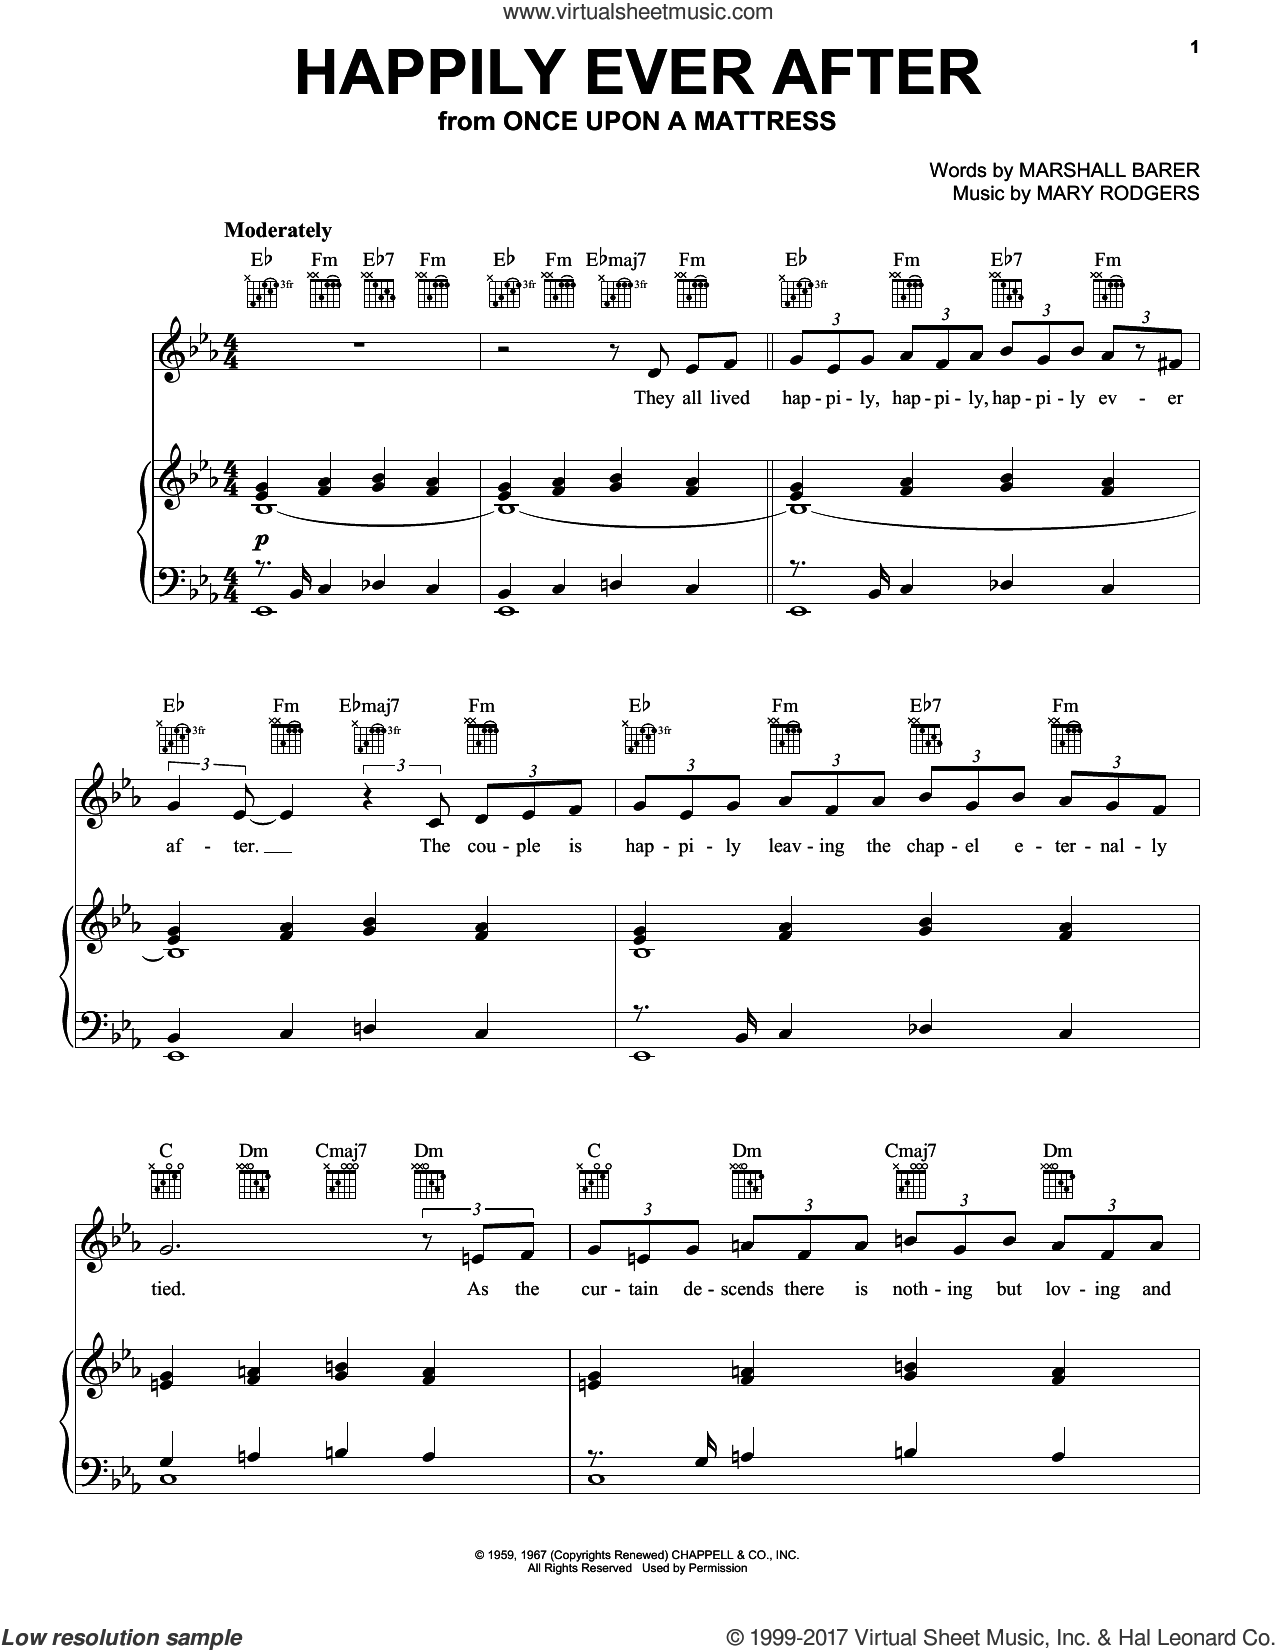 Happily Ever After sheet music for voice, piano or guitar by Rodgers & Barer, Marshall Barer and Mary Rodgers, intermediate skill level